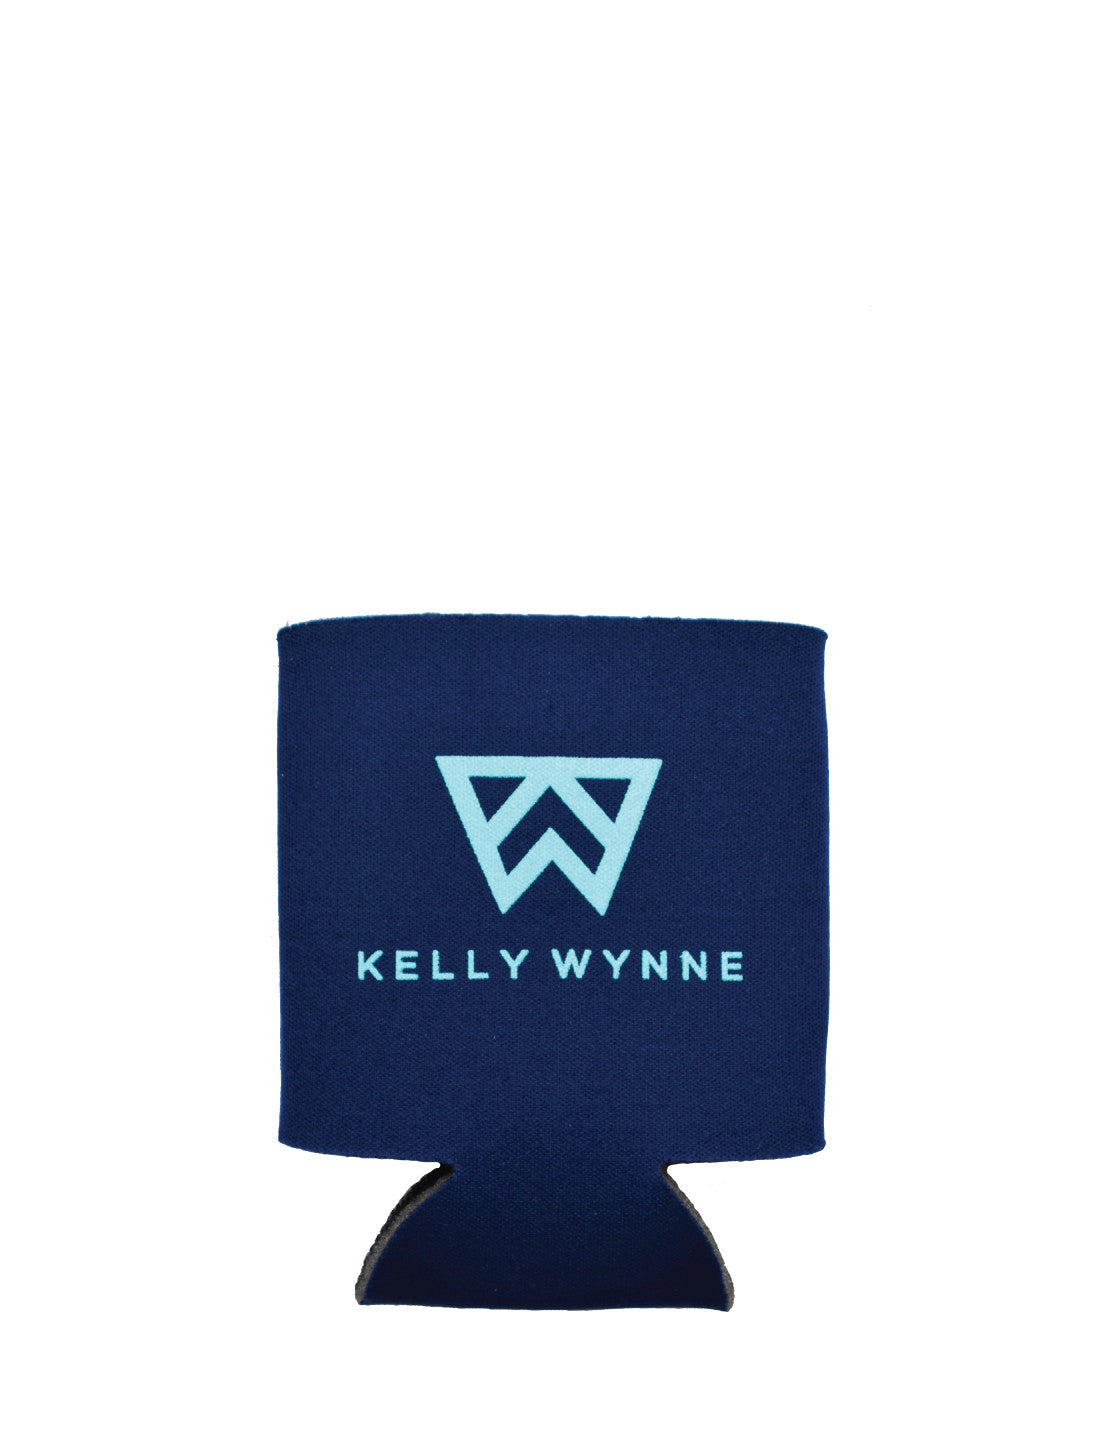 Boozie Koozie in Navy - Lifestyle